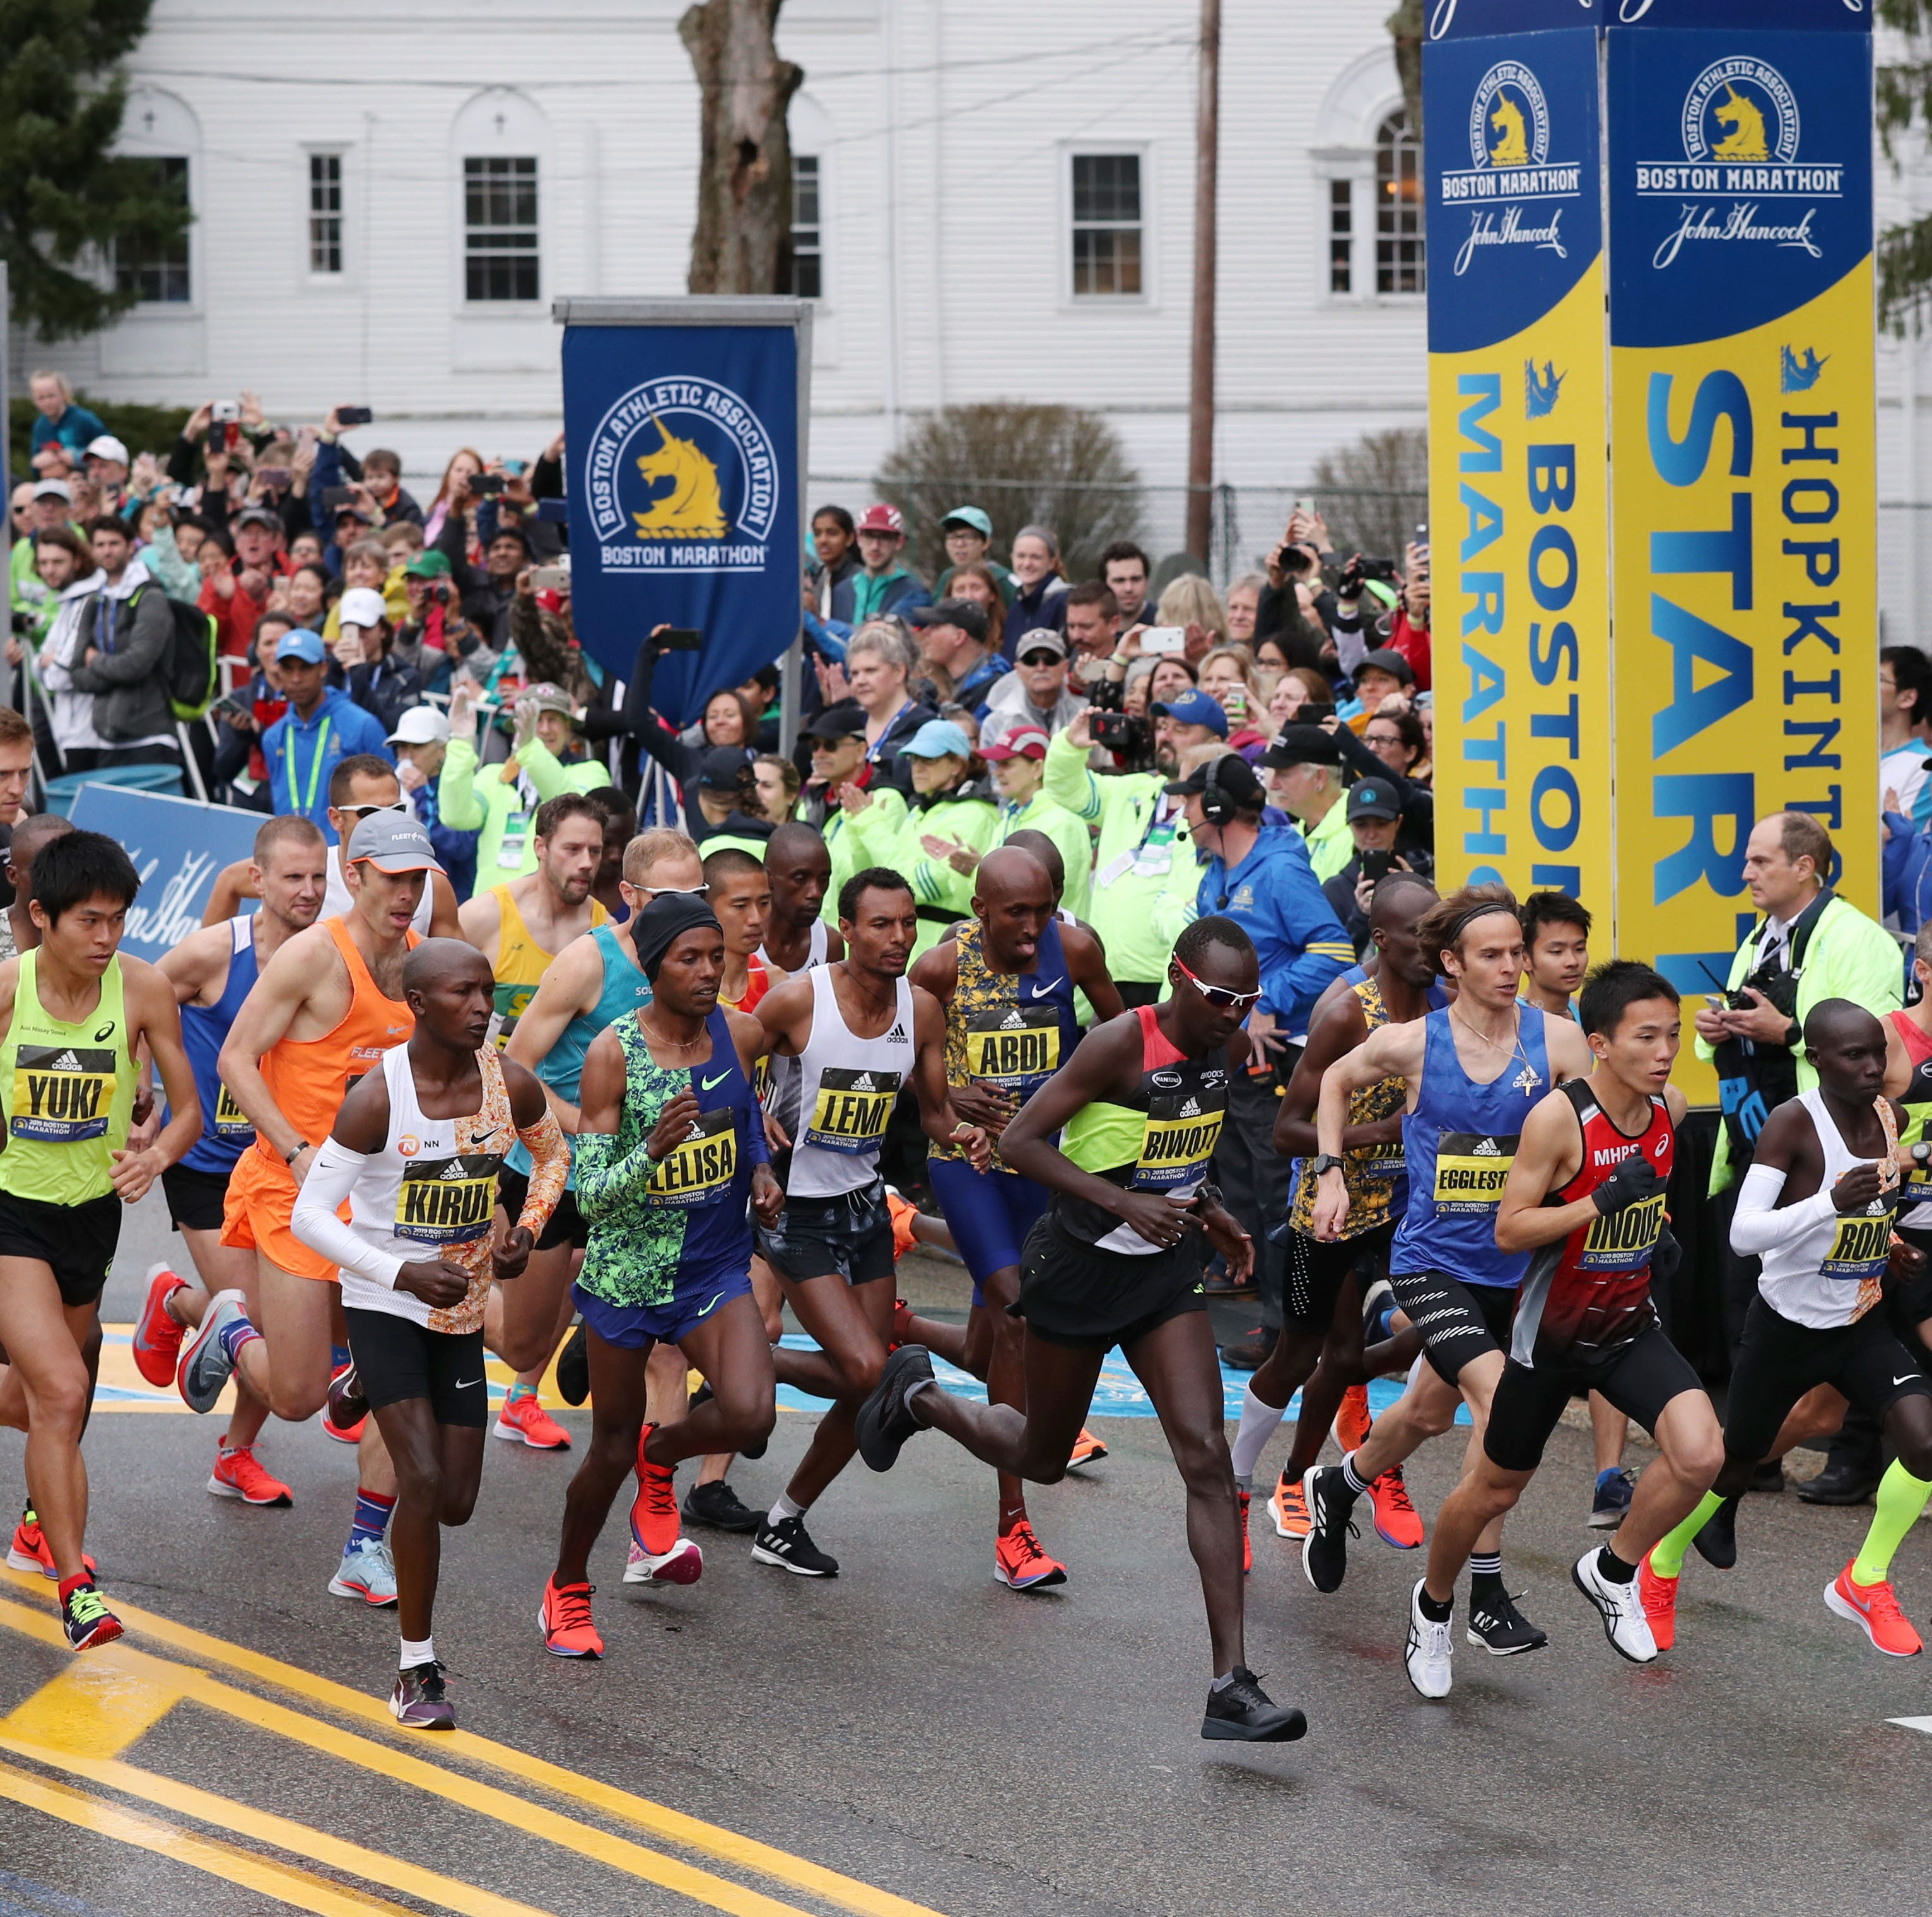 Blind runner among more than 50 Northern Colorado runners who completed Boston Marathon